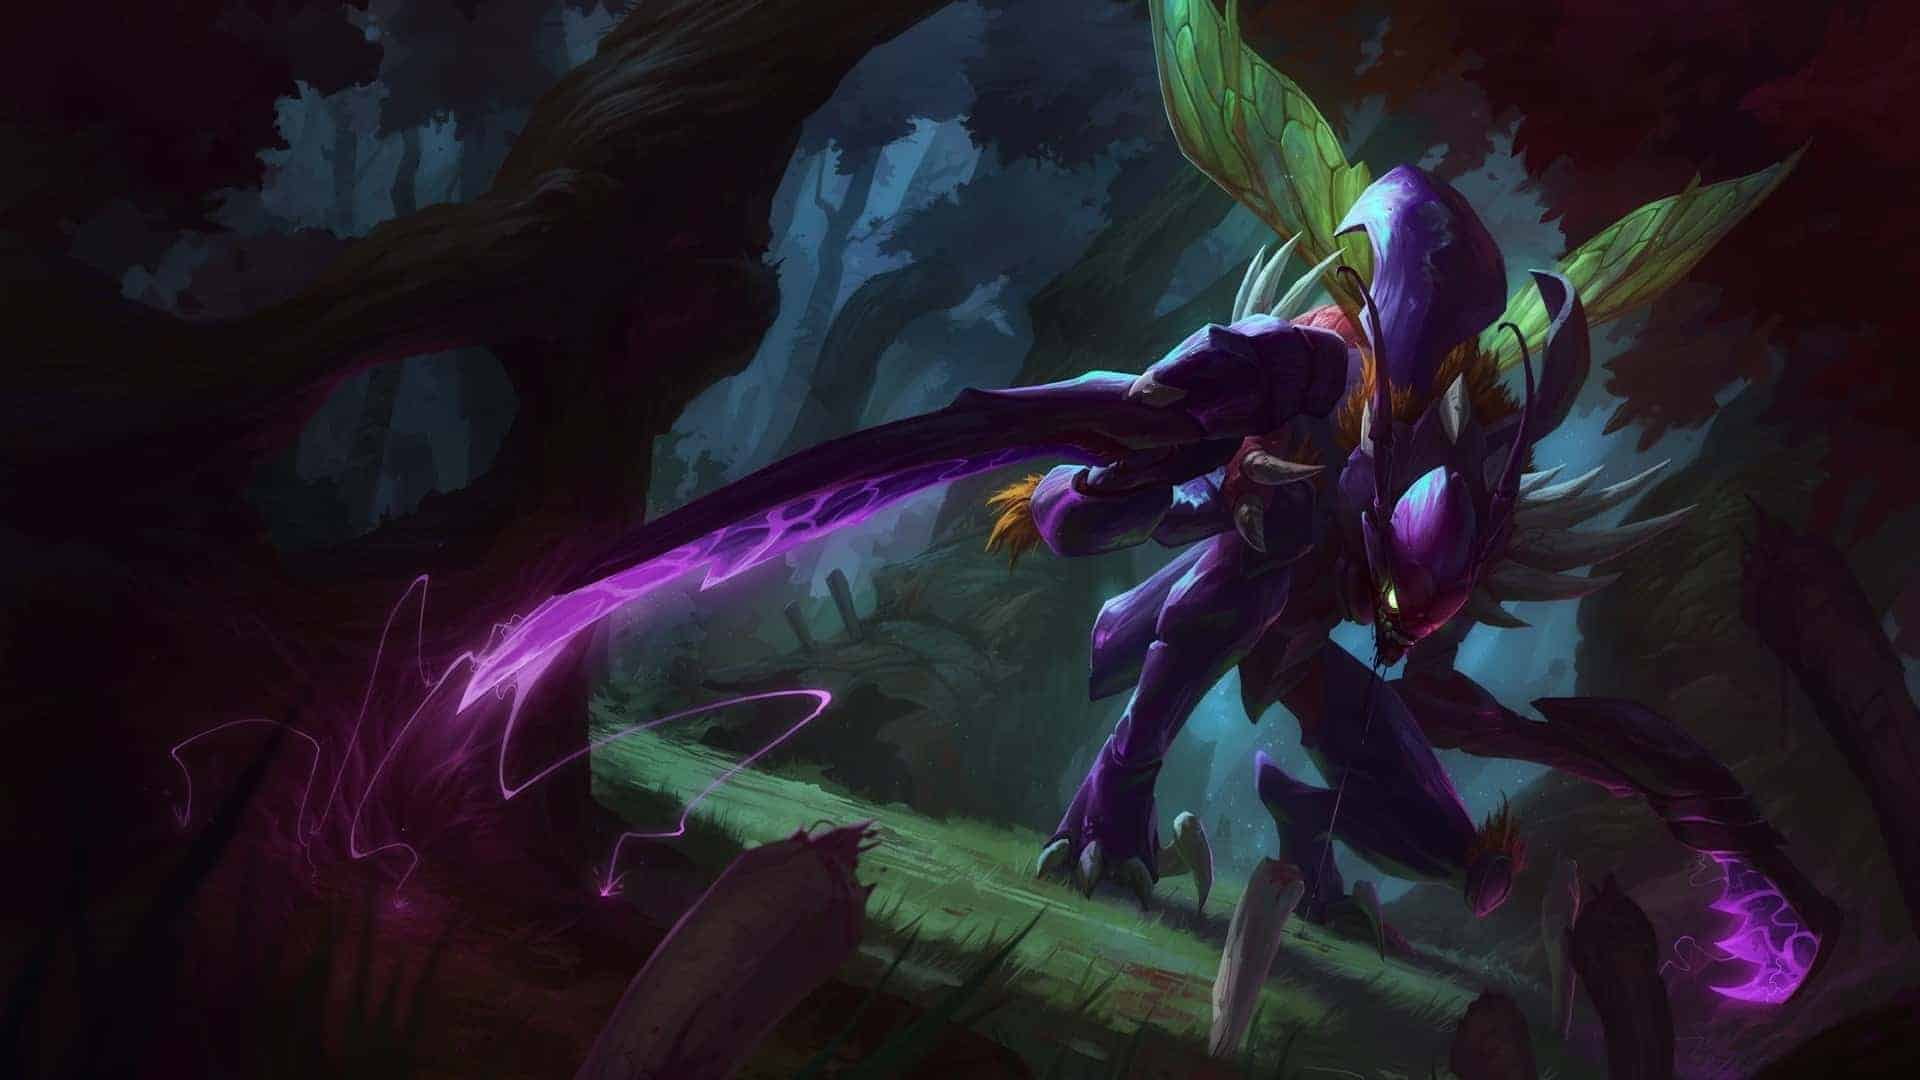 League of Legends – Kha'Zix Highlighted In Art Video